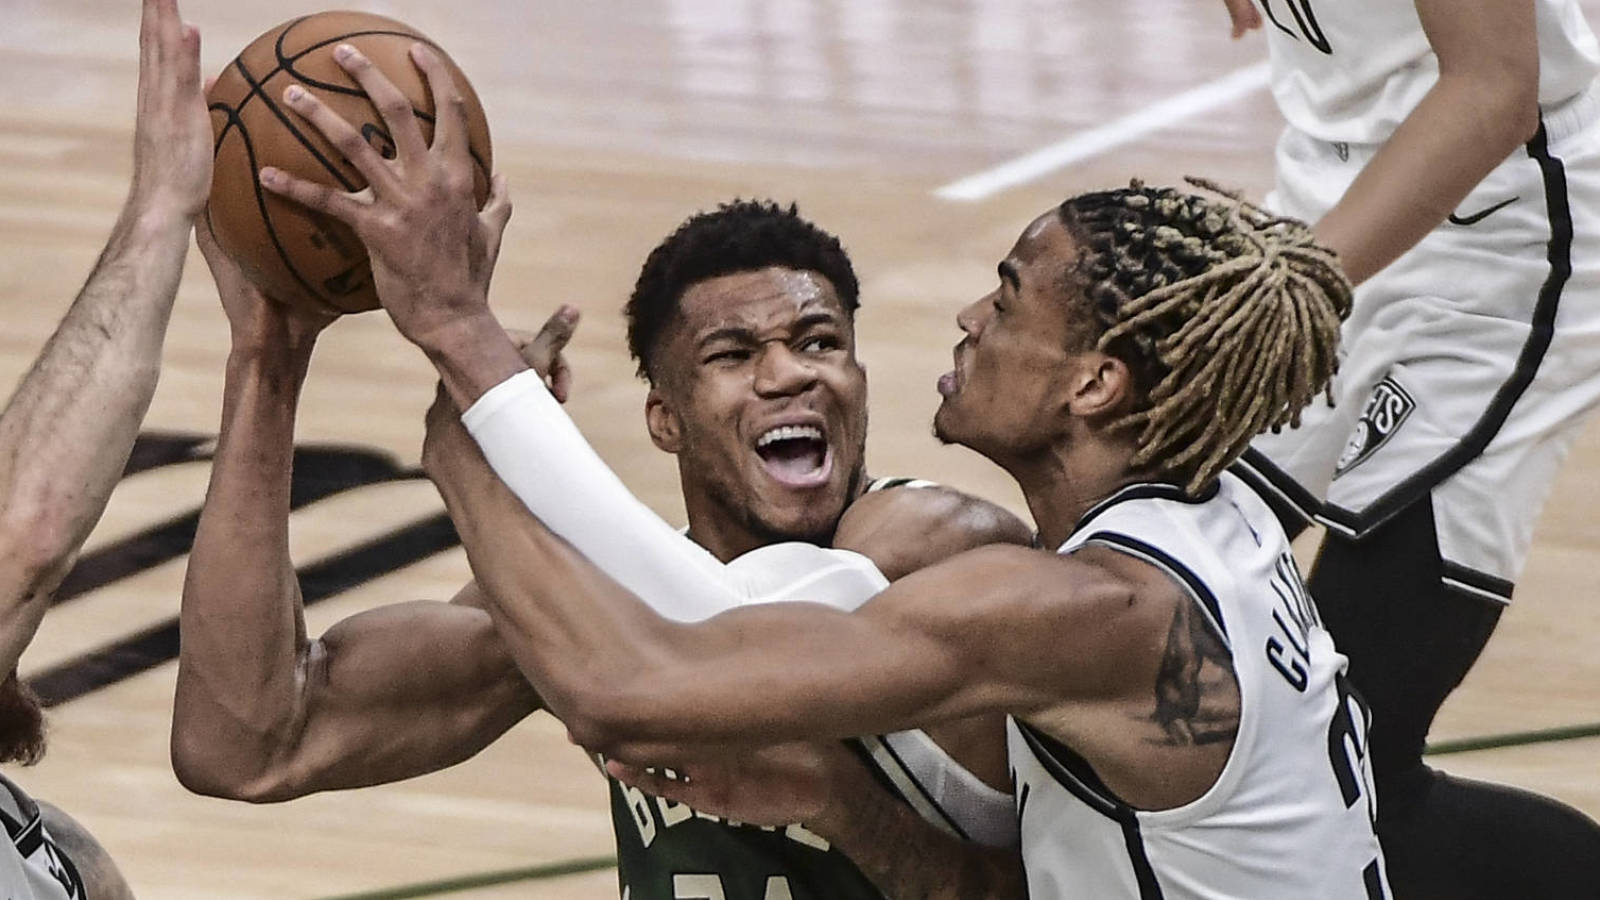 NBA World reacts to Bucks' brave win over Nets in Game 3